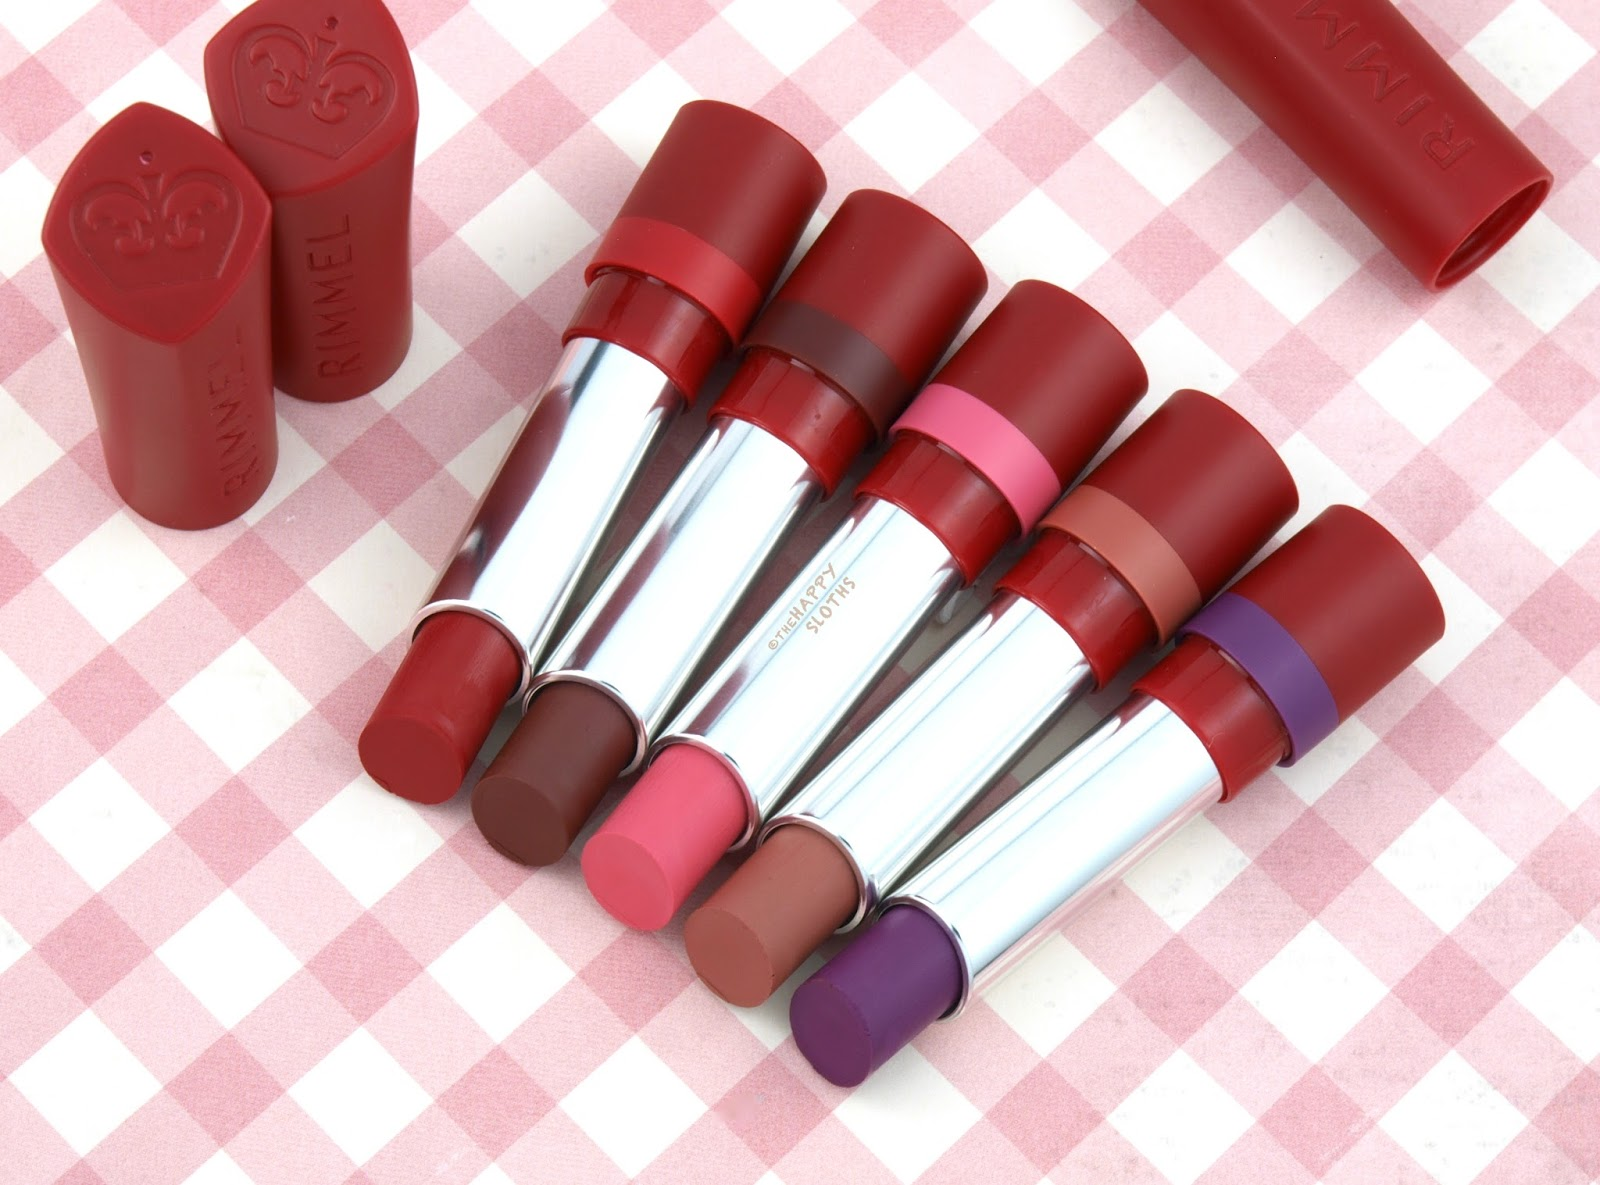 Rimmel London The Only 1 Matte Lipstick: Review and Swatches